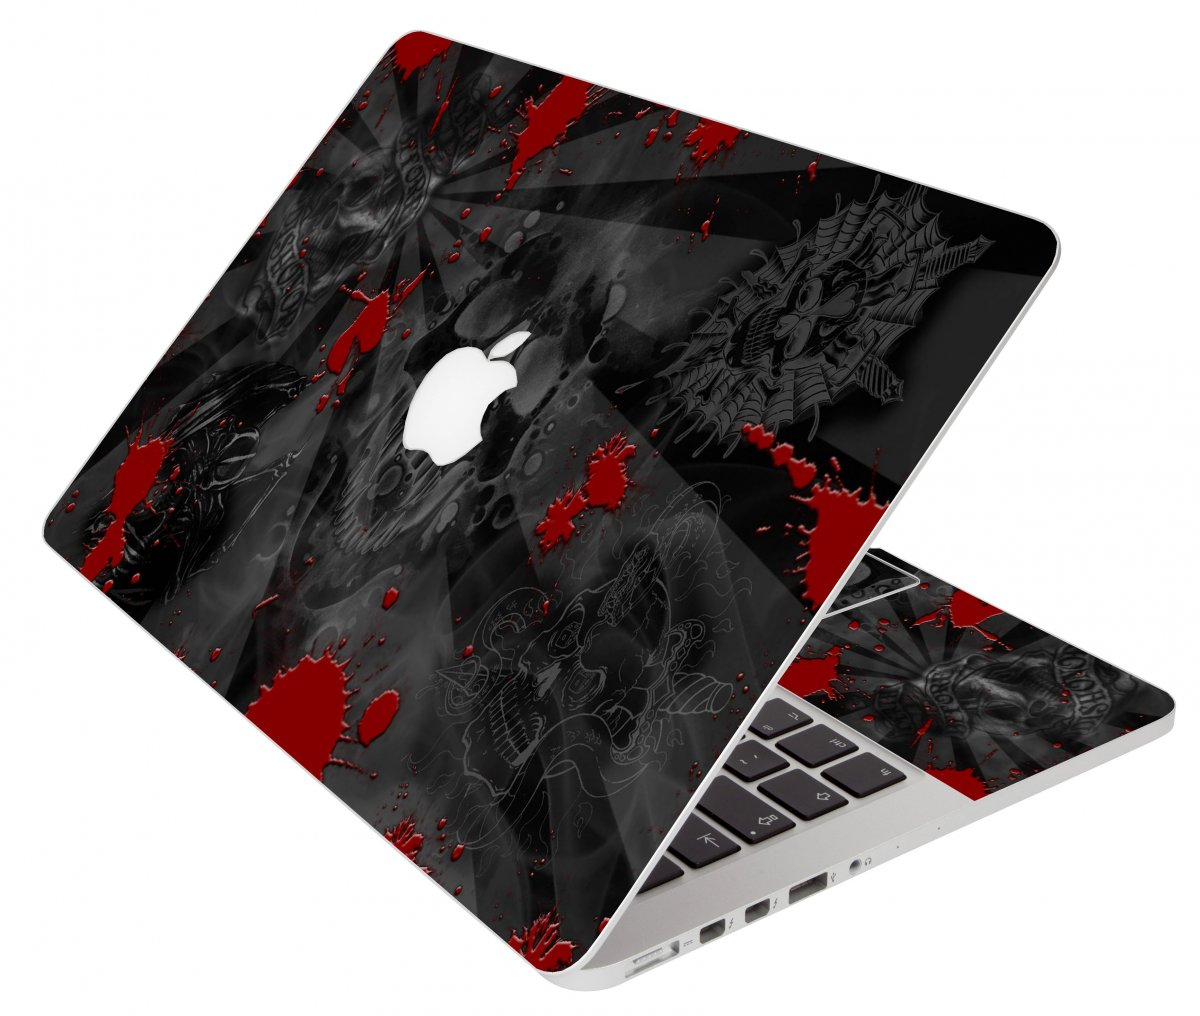 Black Skull Red Apple Macbook Air 11 A1370 Laptop Skin